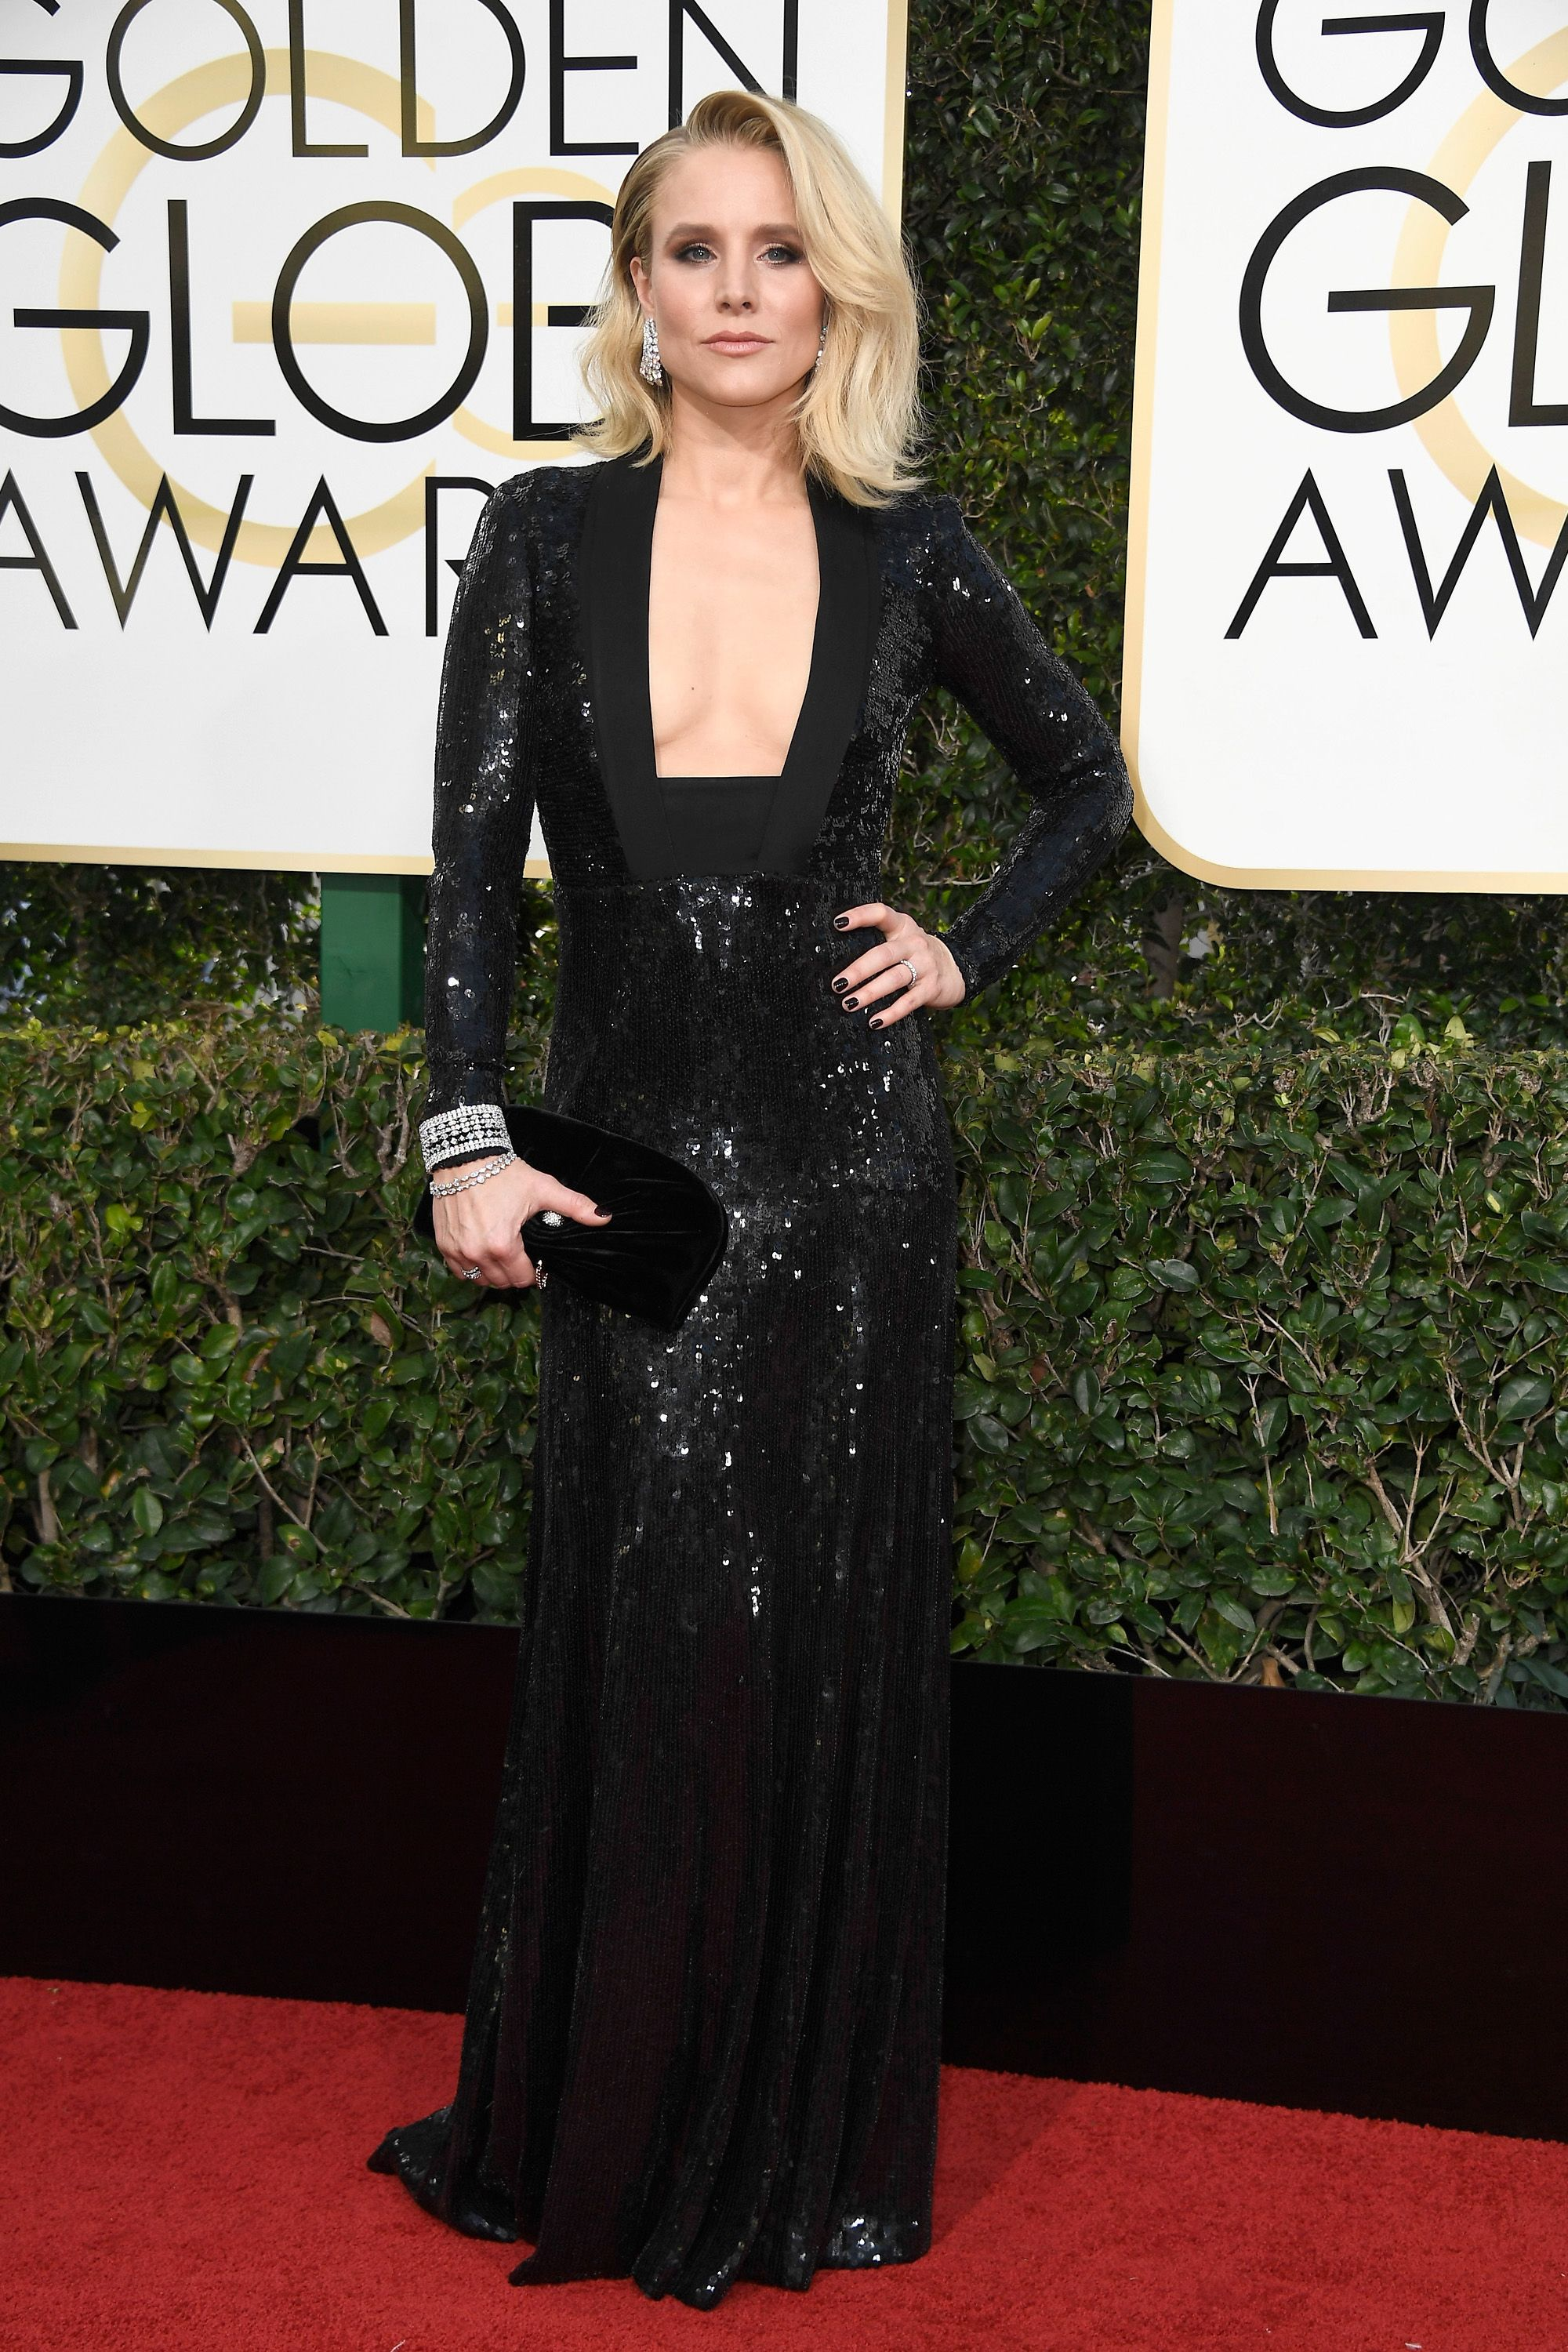 The Best Of The Golden Globes 2017 Red Carpet Arrivals Red Carpet Dresses Celebrity Red Carpet Red Carpet Fashion